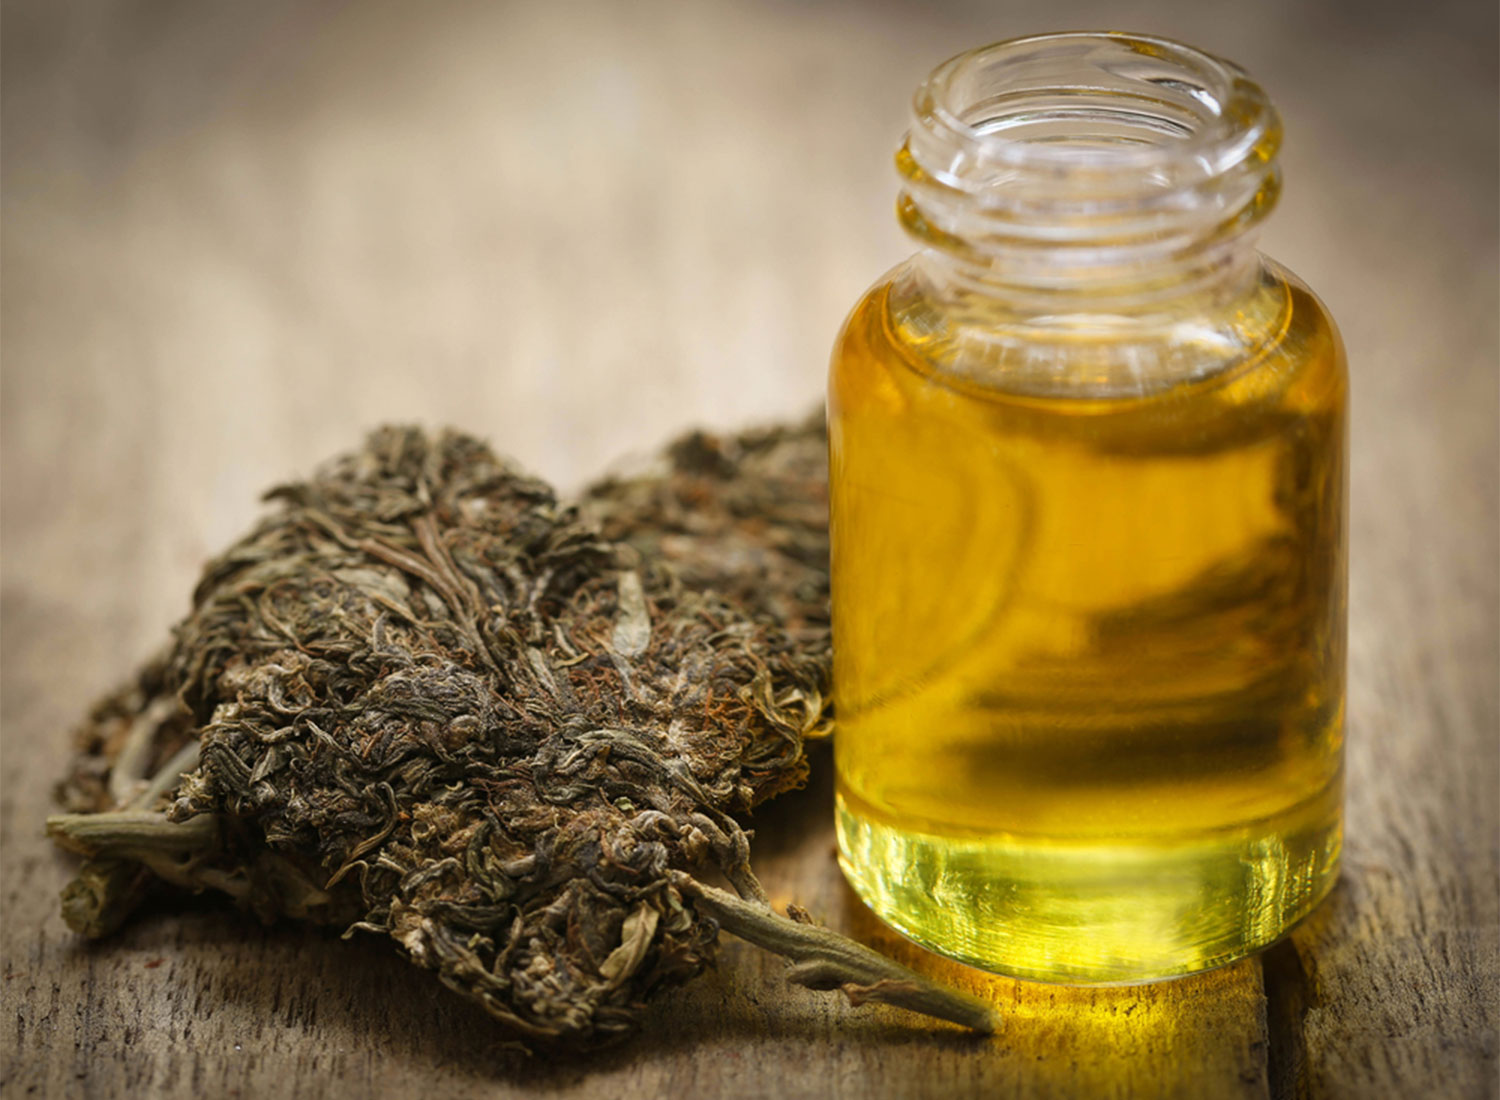 Forms of Taking CBD Oil